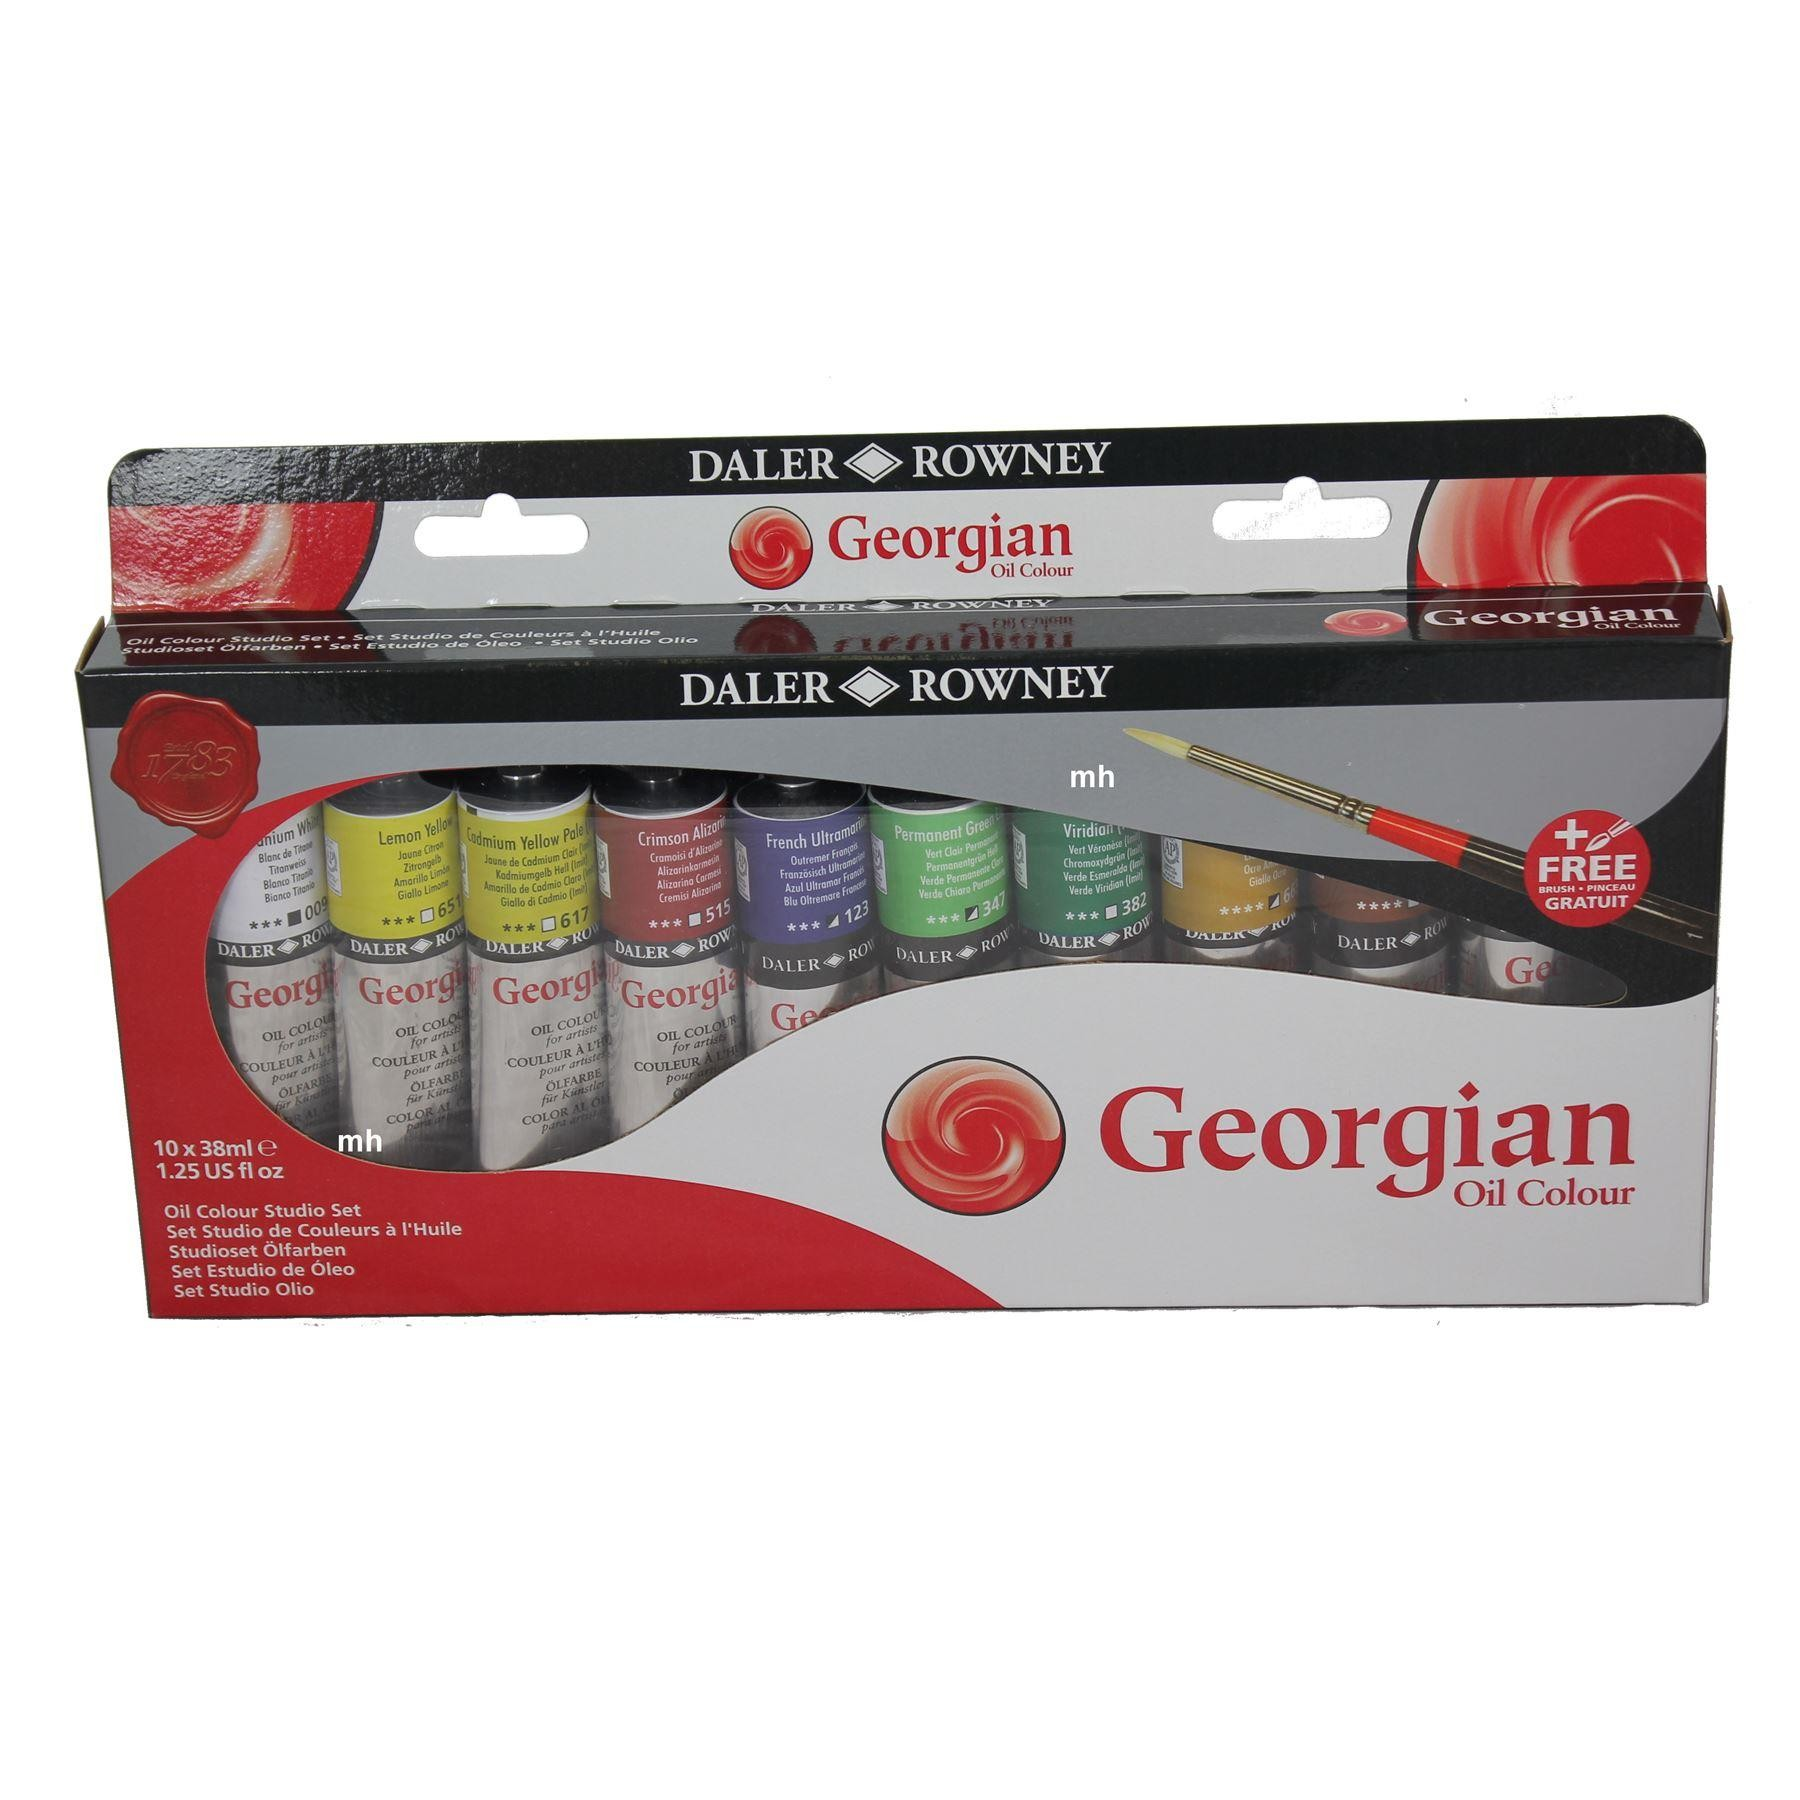 Daler Rowney Artists Georgian Oil colour paint set 10 x 38ml  Set